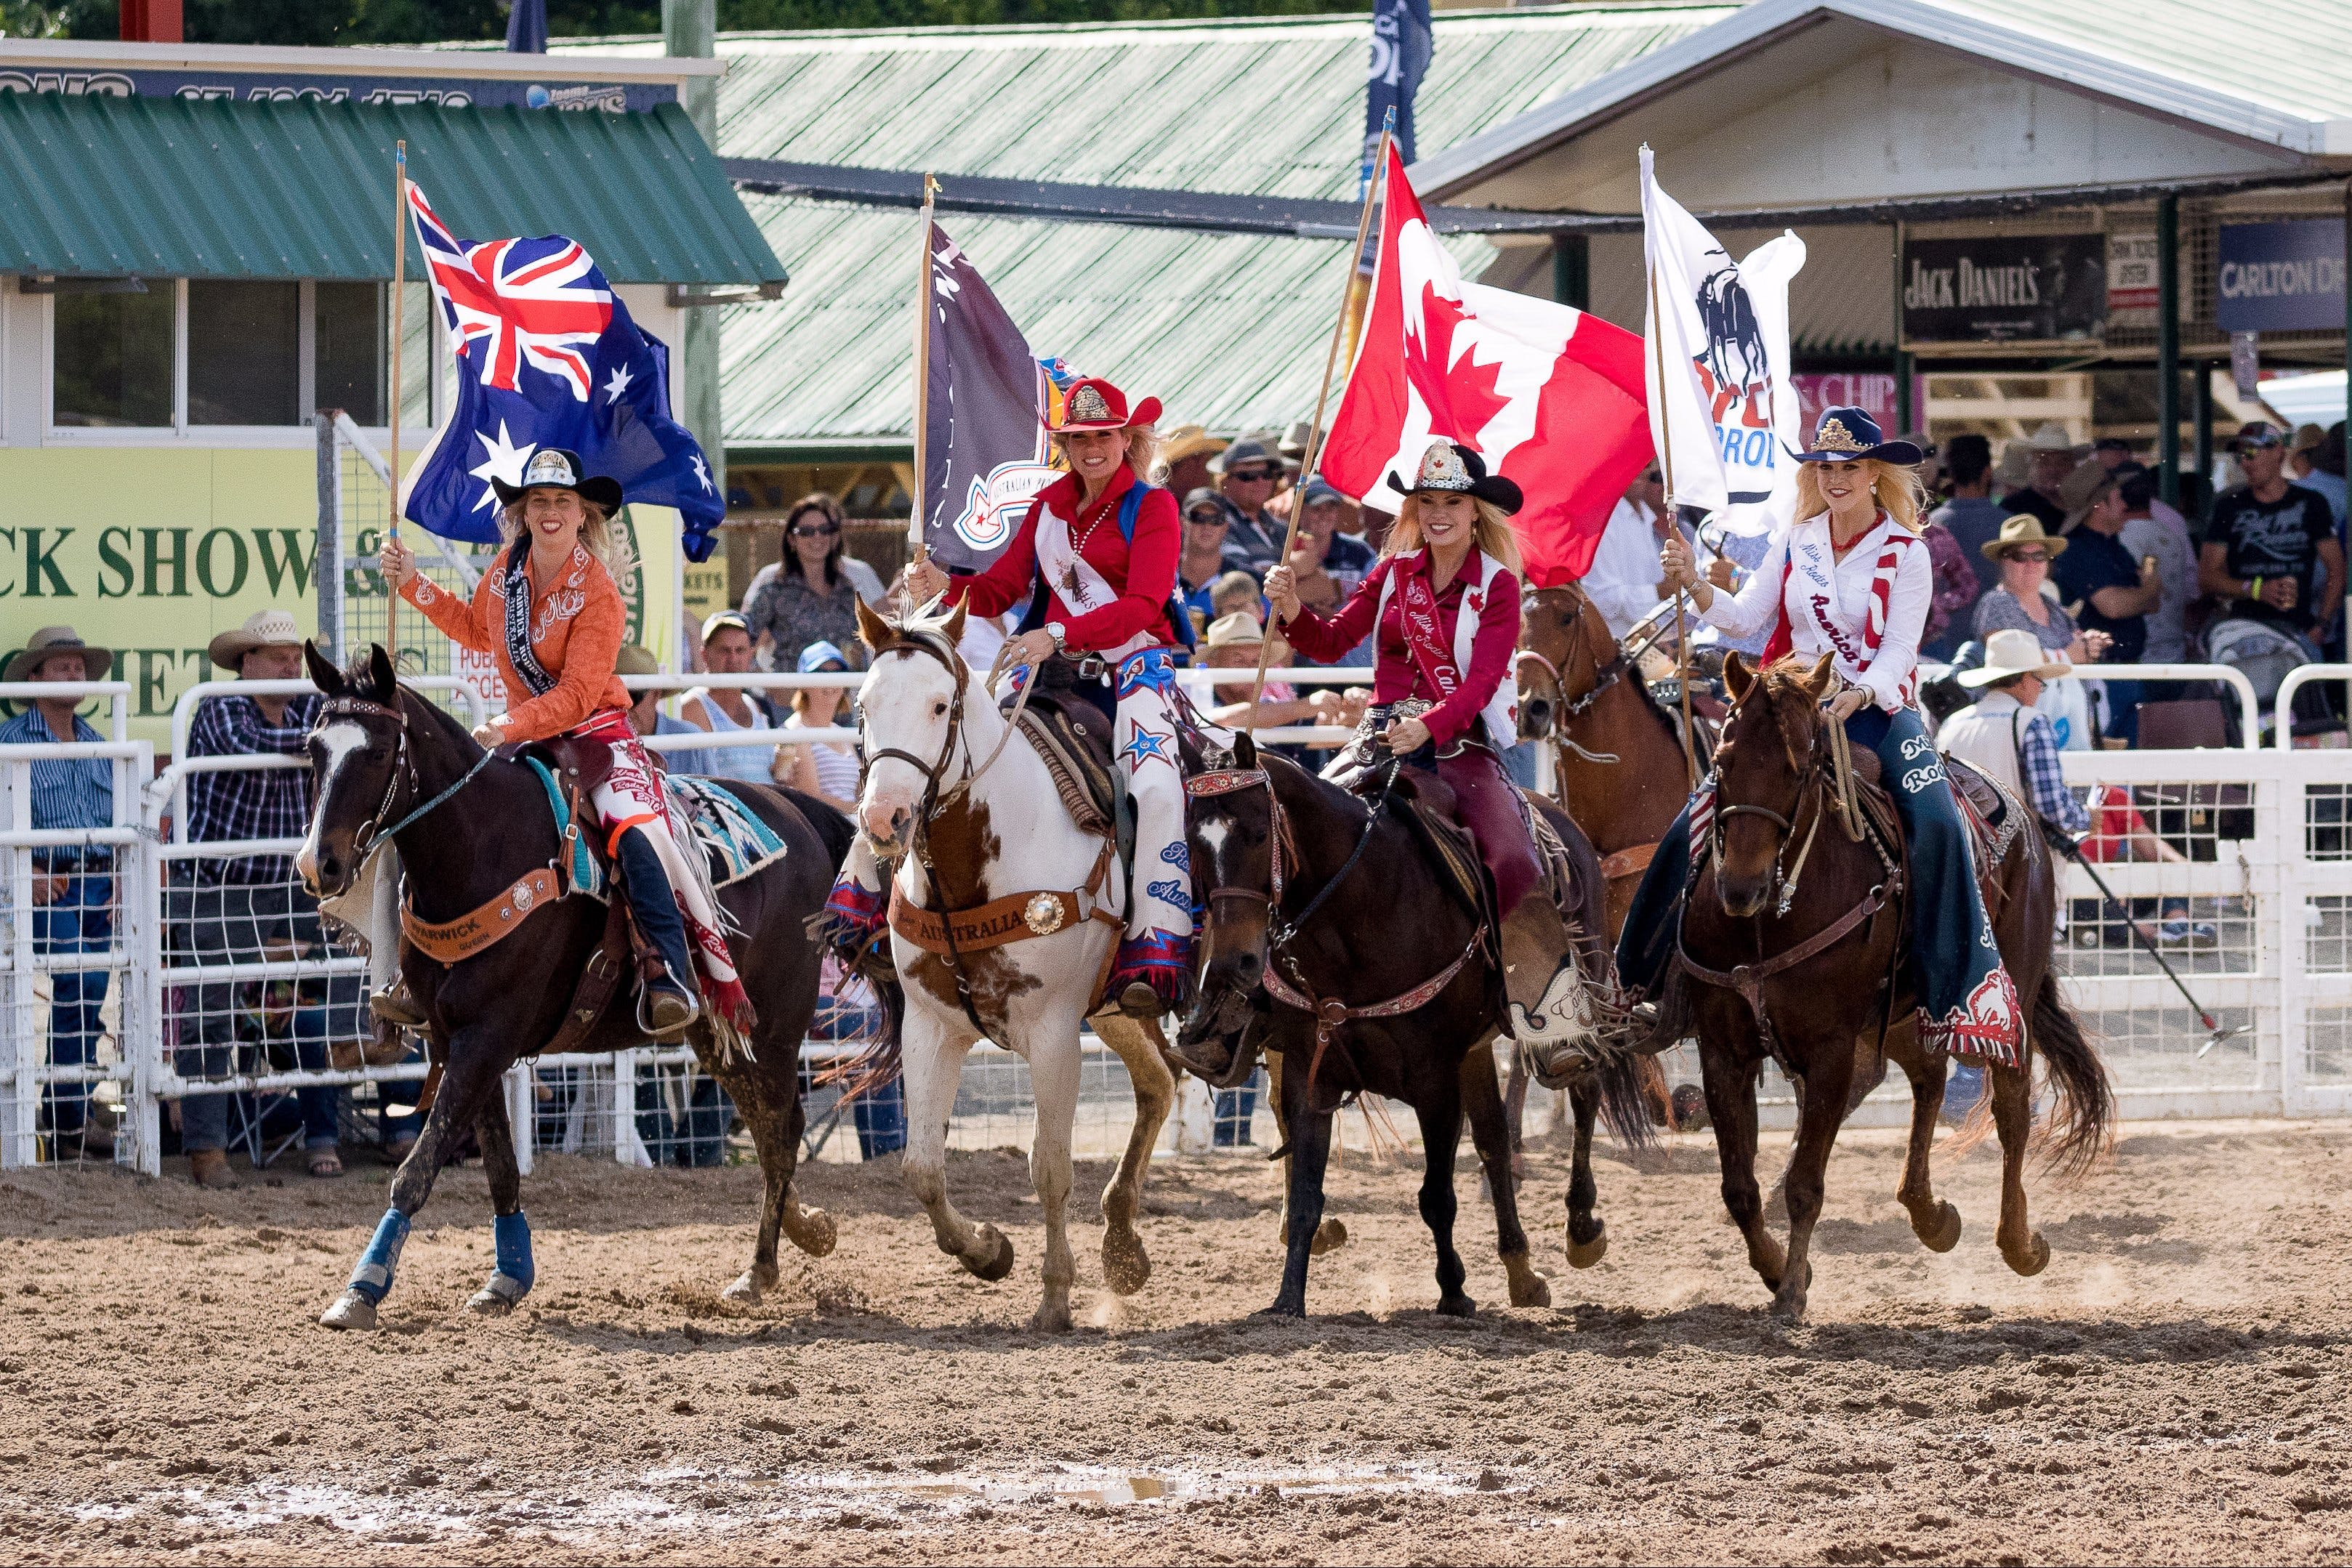 Warwick Rodeo National APRA National Finals and Warwick Gold Cup Campdraft - Accommodation NSW